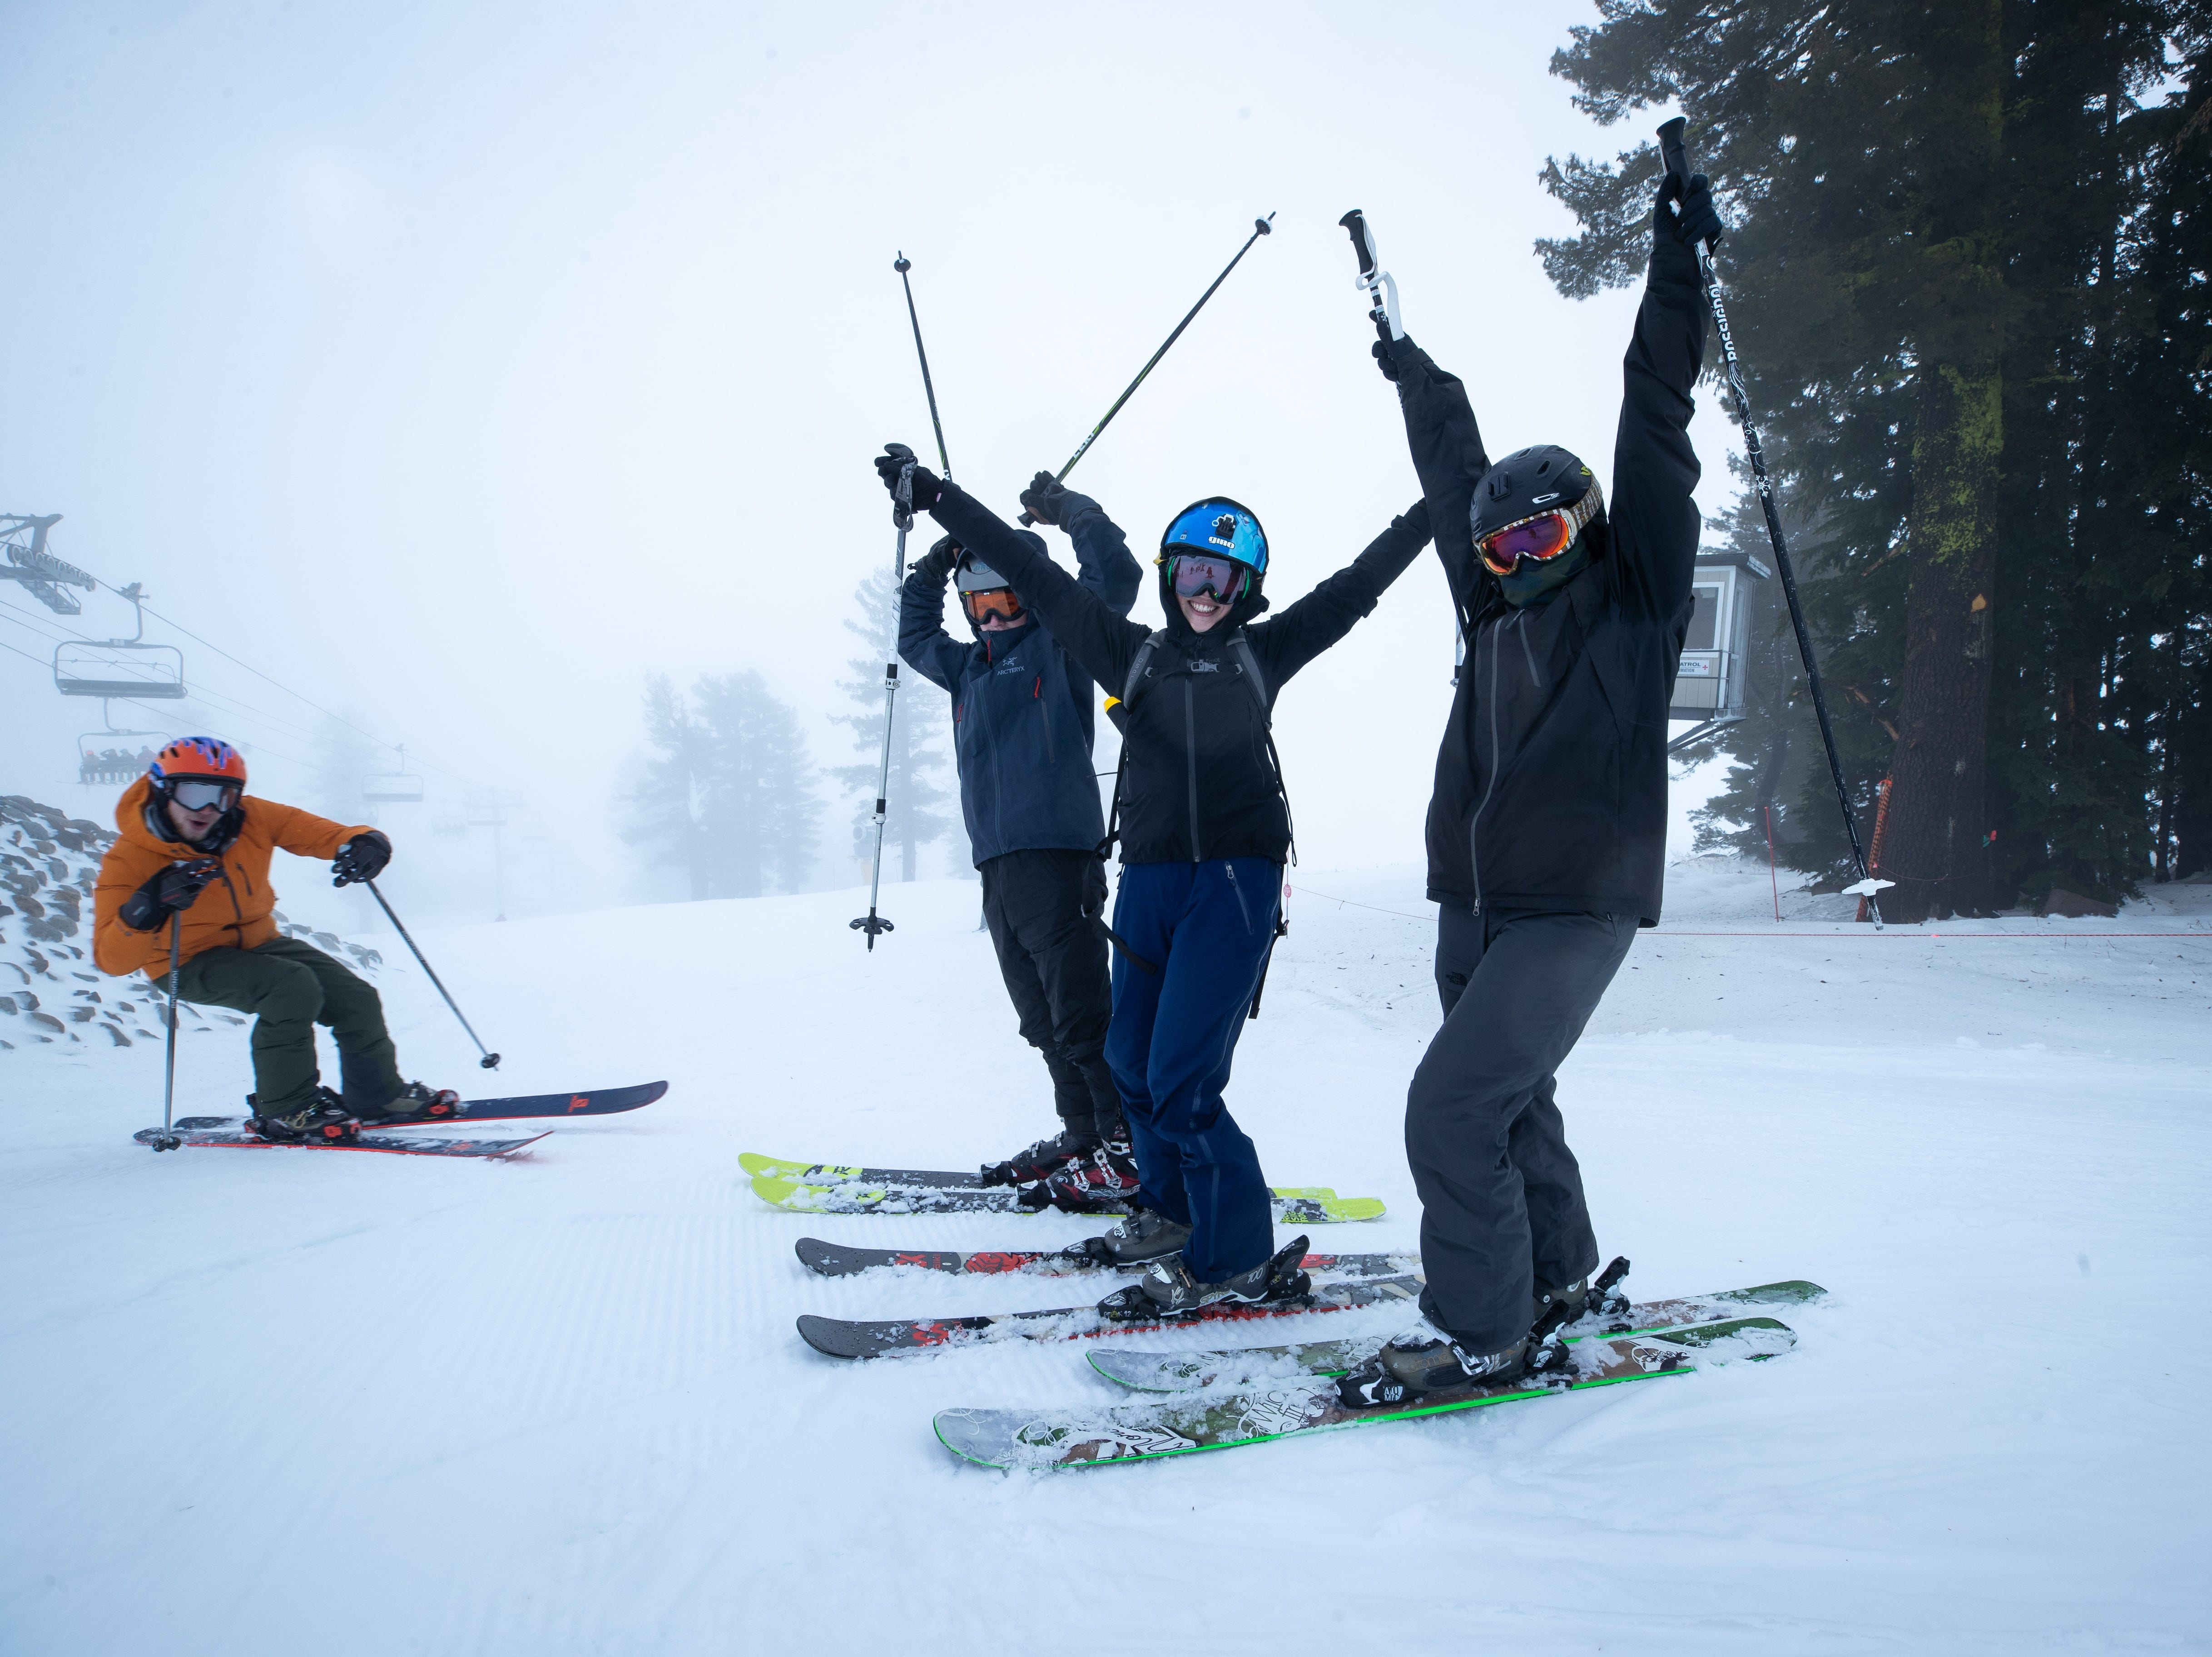 The upper levels of Squaw Valley Alpine Meadows received as much as 25 inches of snow from a storm over the Thanksgiving holiday weekend.